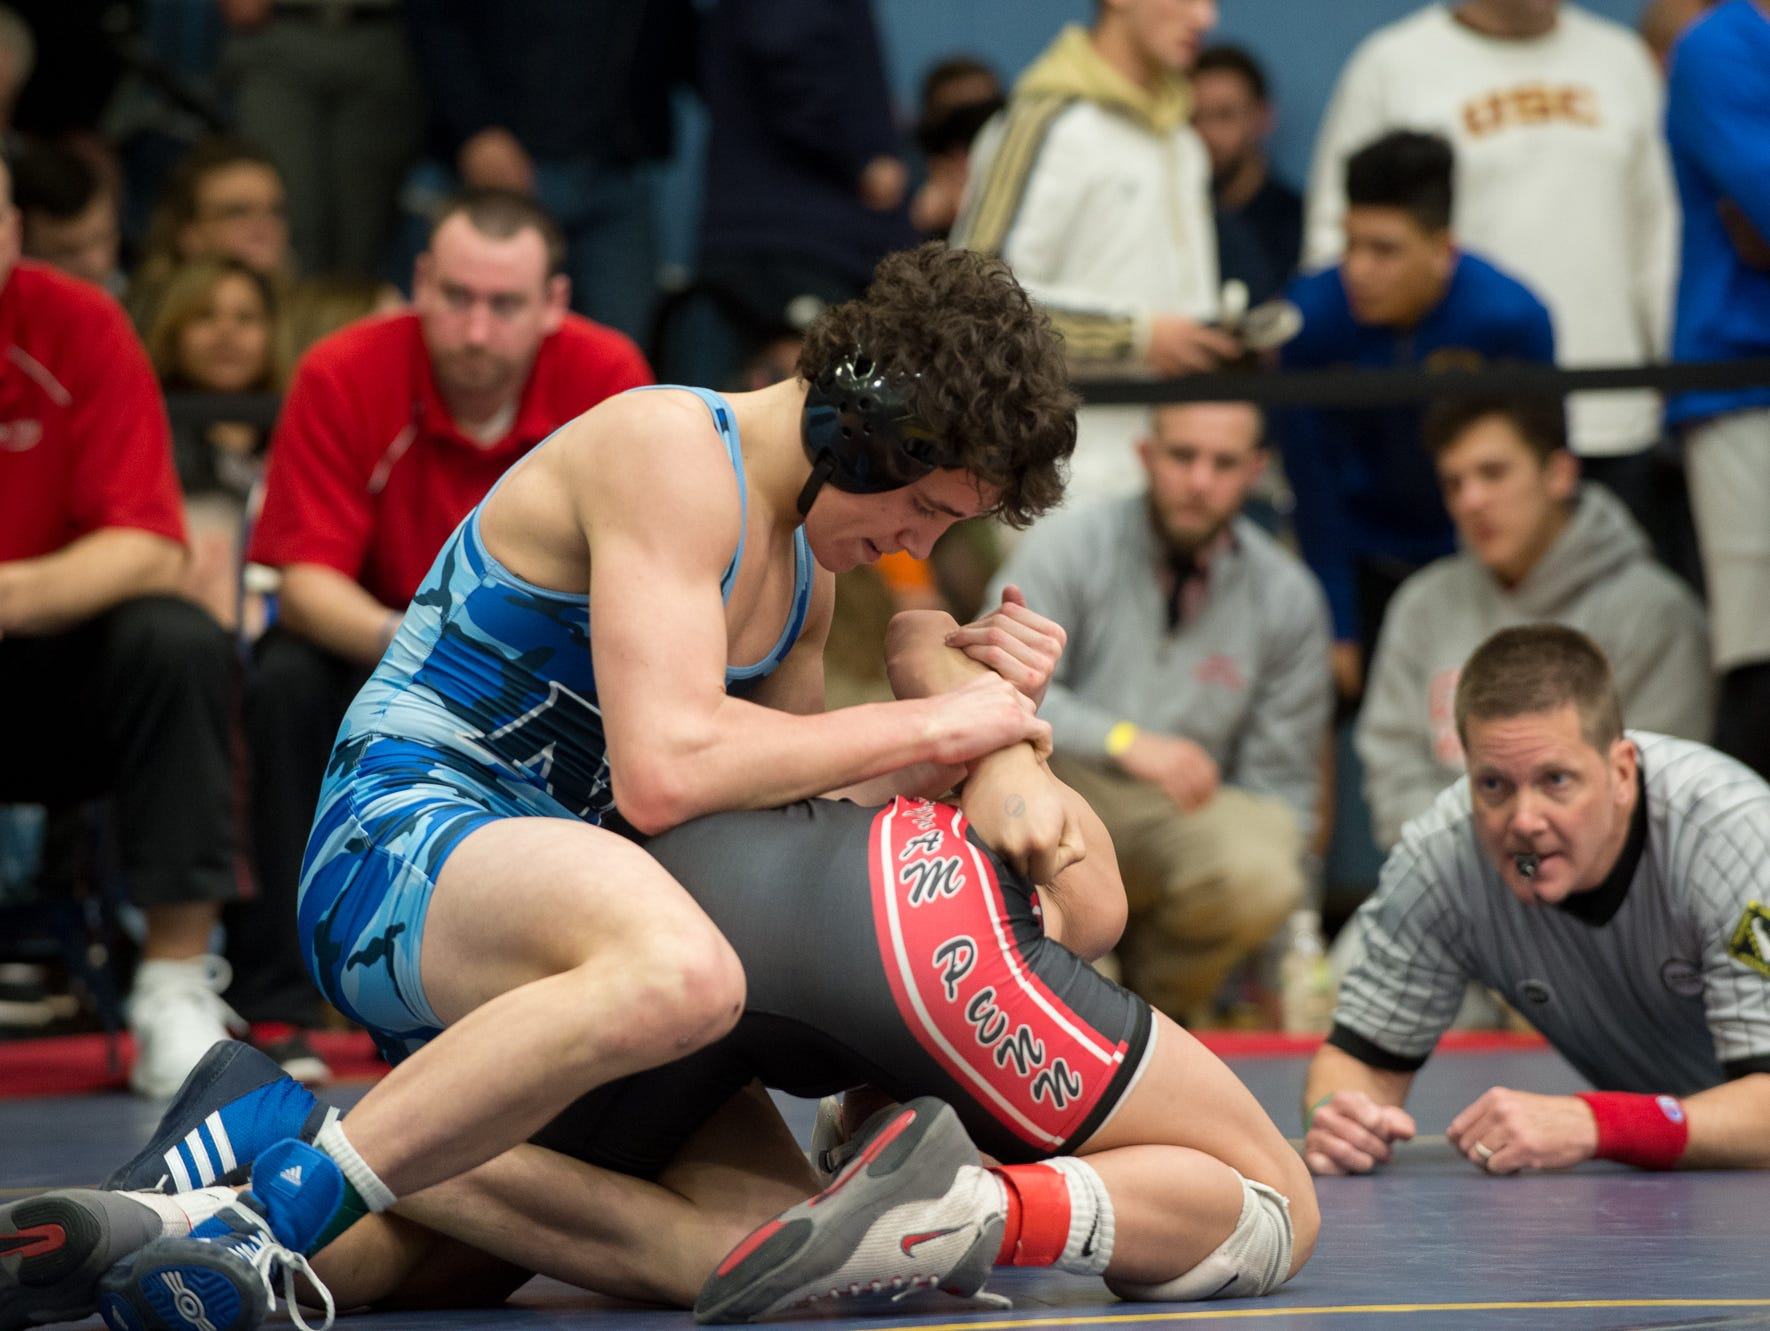 Middletown's Dante Immediate, left wrestles William Penn's Thien Nguyen in the 126 pound quarterfinals at the DIAA Individual State Tournament at Cape Henlopen High School.